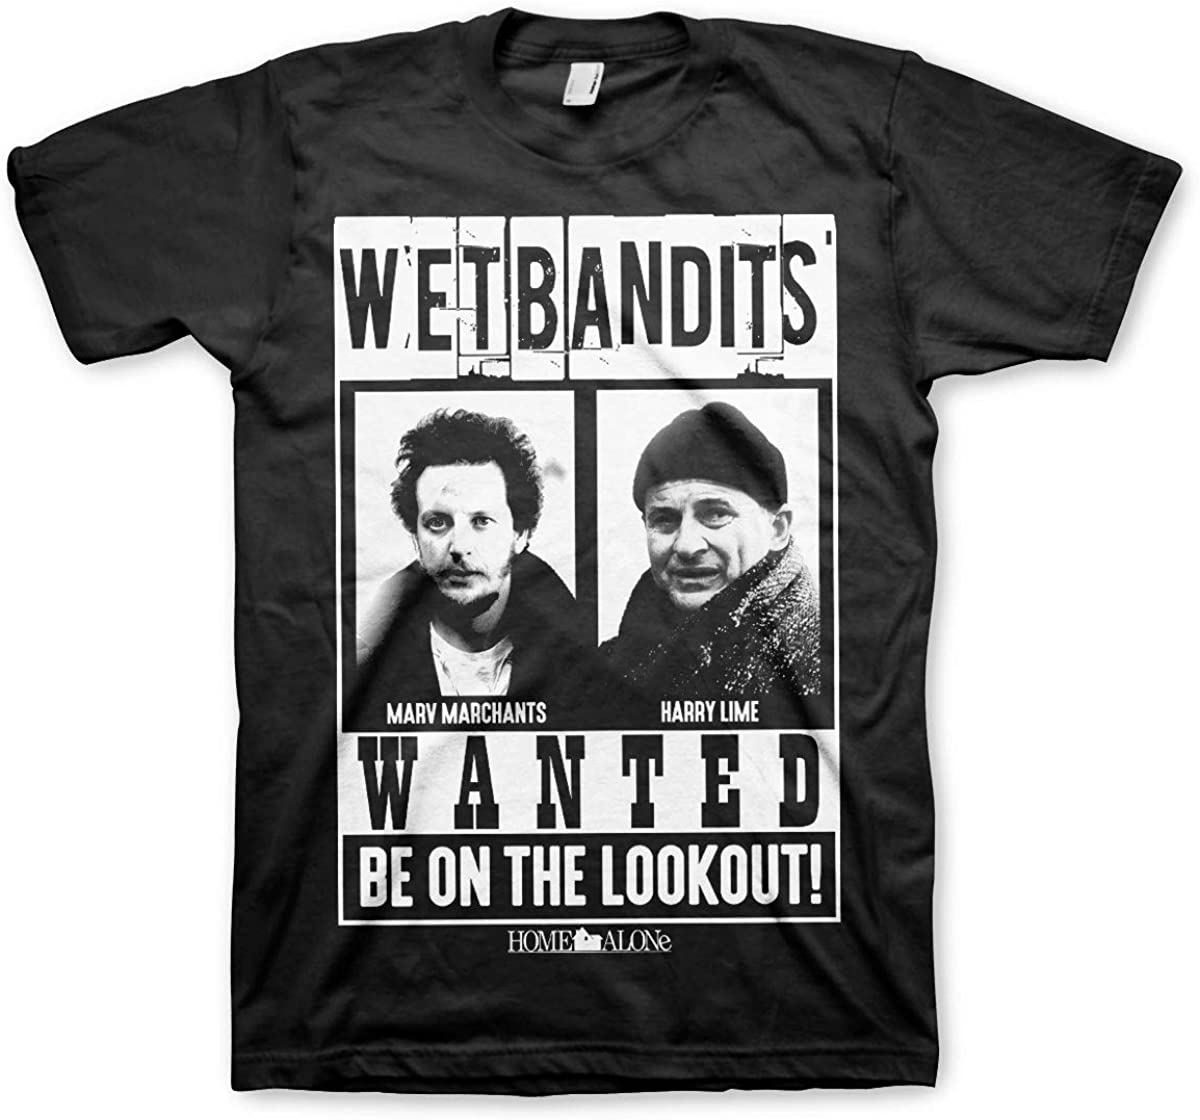 Home Alone Officially Licensed Wet Bandits Mens T-Shirt (Black)